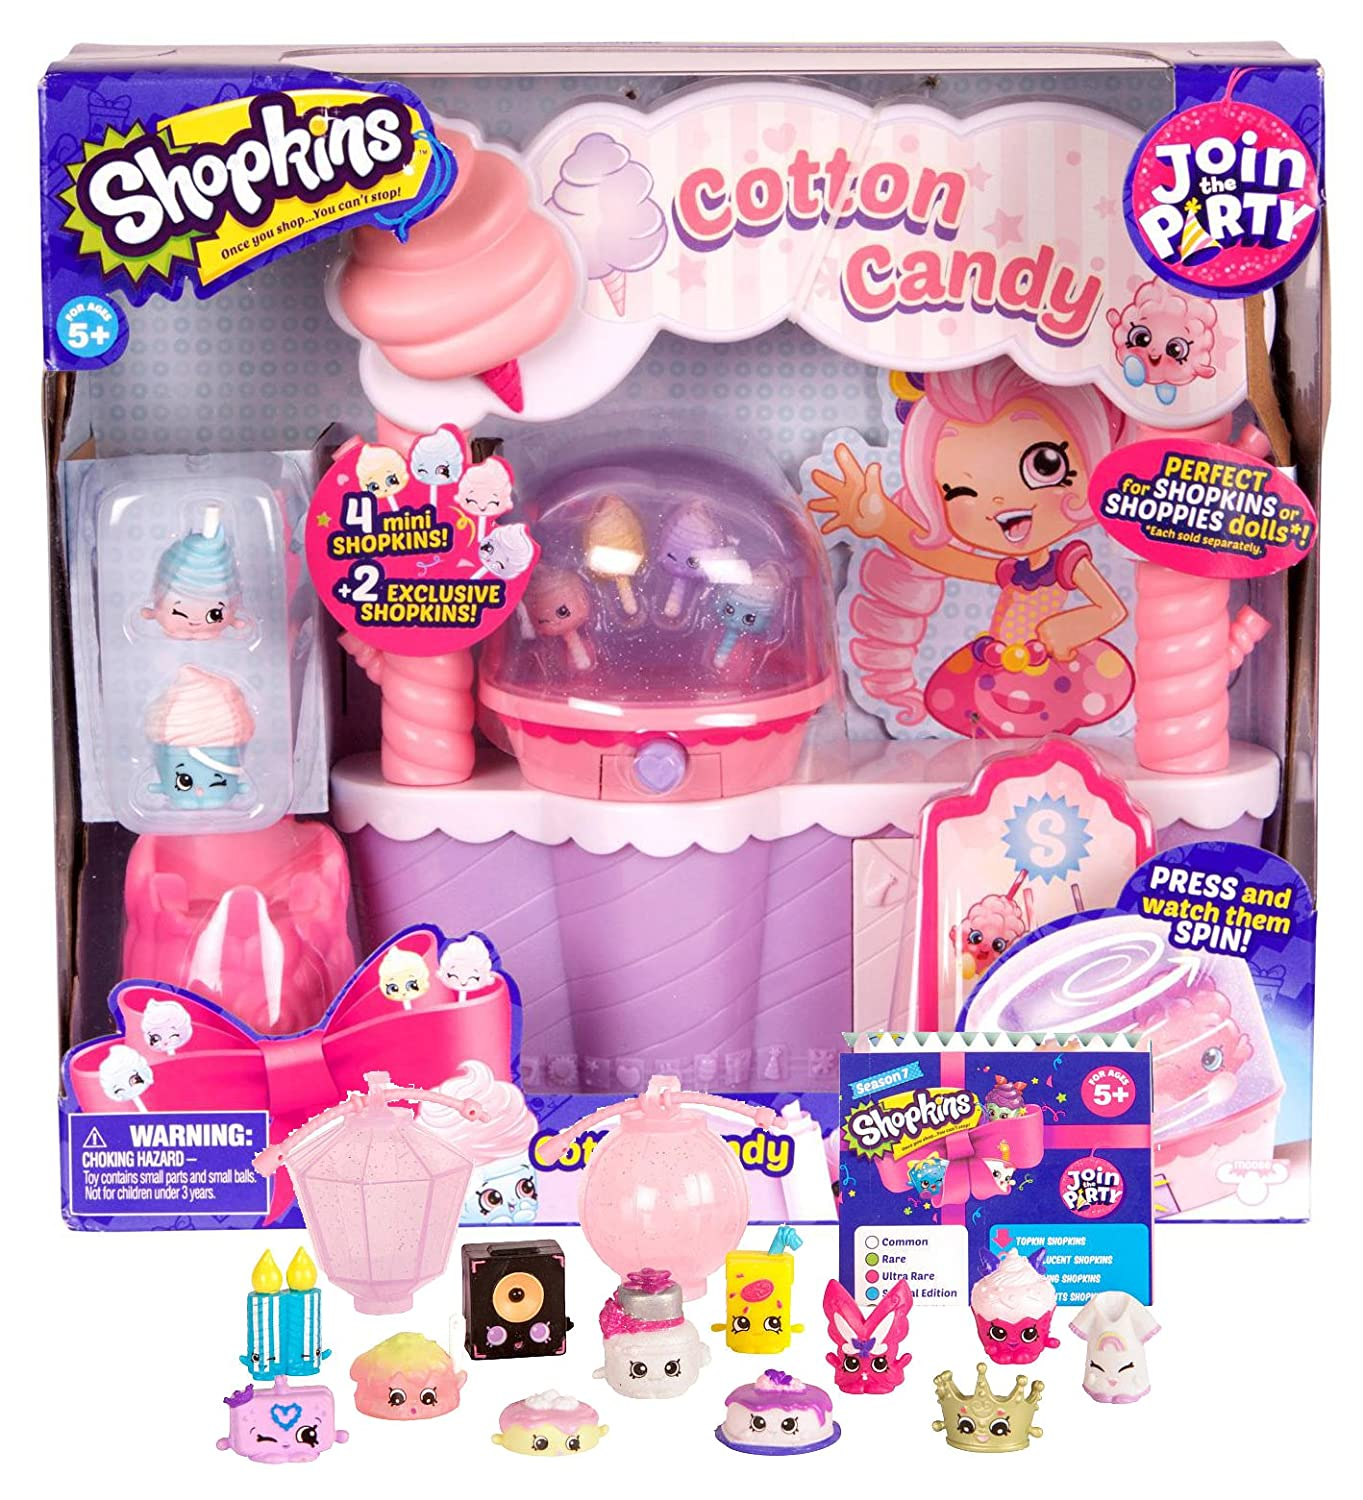 Shopkins Cotton Season and 7 Party Join The Party Cotton Candy Party Playset and 12-Pack Bundle B06XQGR2SS, アップル専門店「PLUSYU楽天堂」:0c115157 --- arvoreazul.com.br